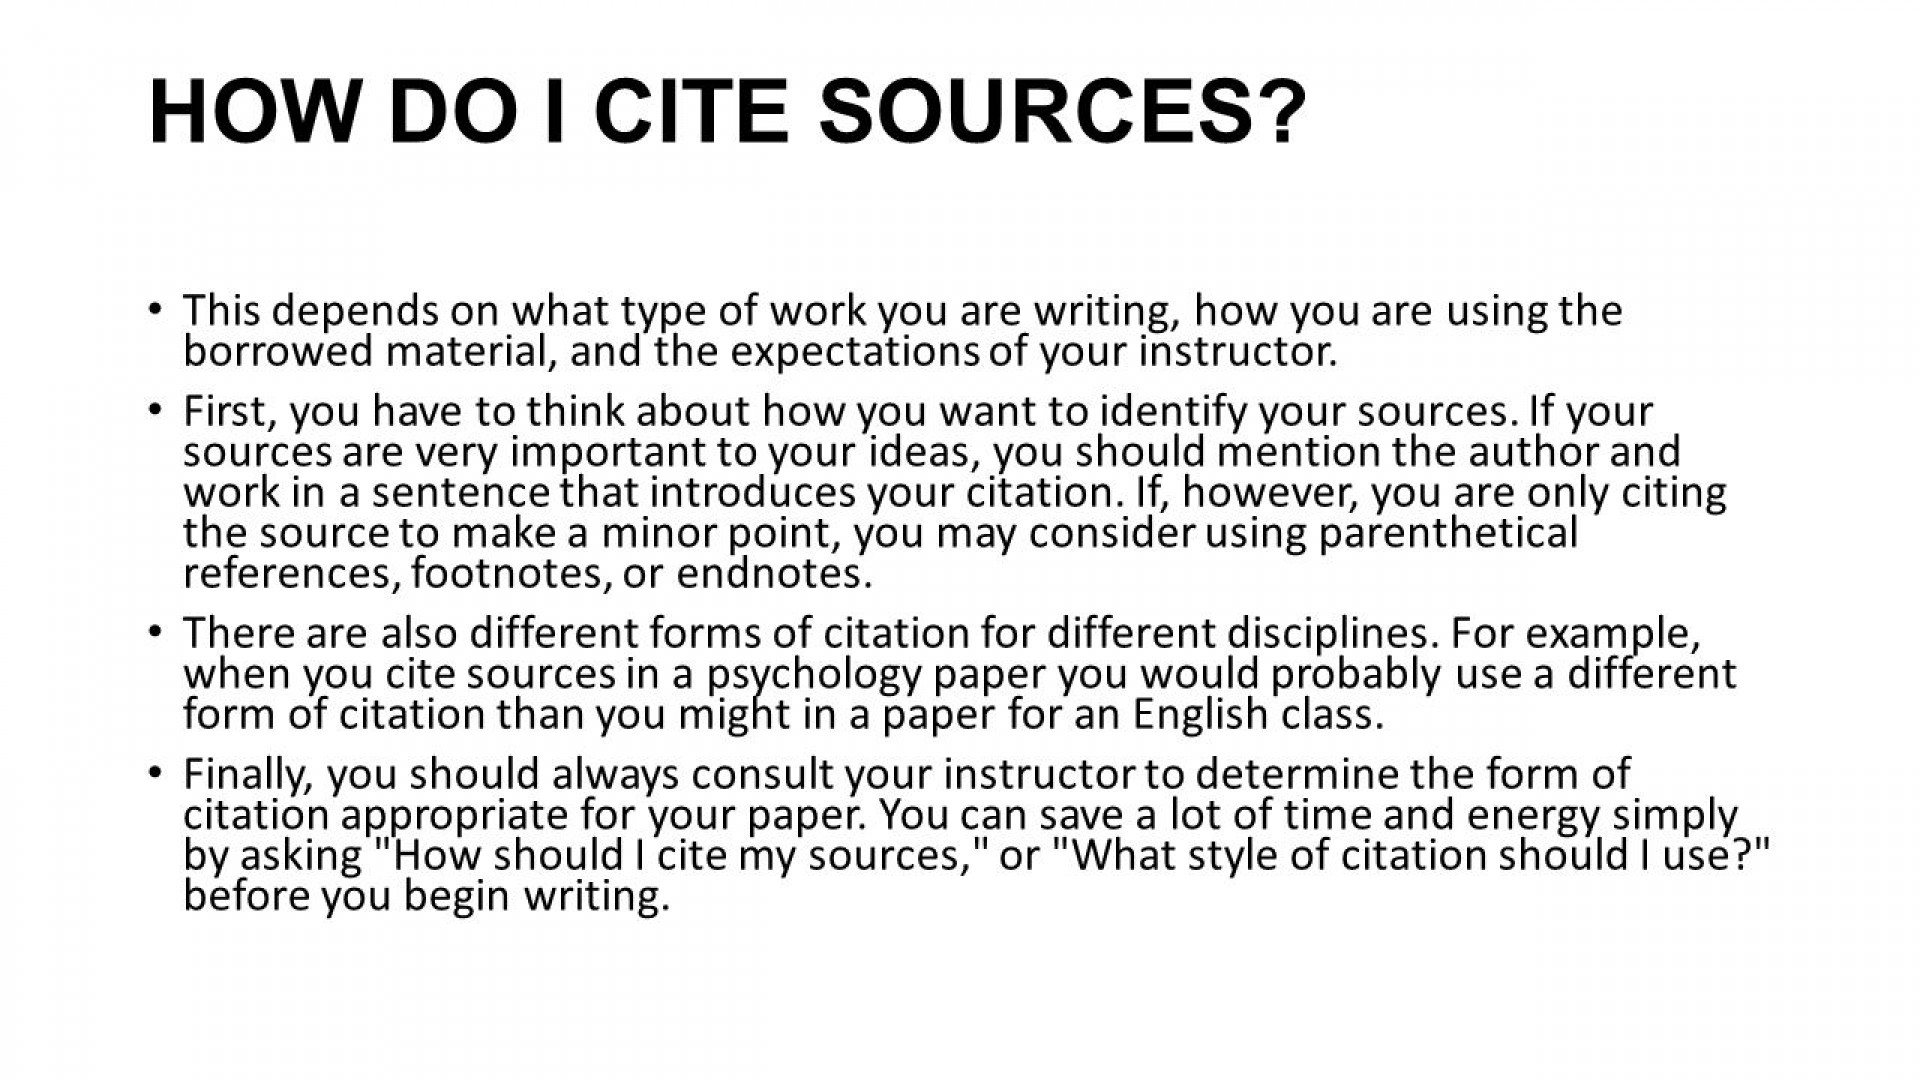 009 Cite An Essay How Do U Website In Mla Citation To Write Sl At The End Of Research Paper Online References Page Academic Archaicawful A Textbook Within Book Apa 8 1920